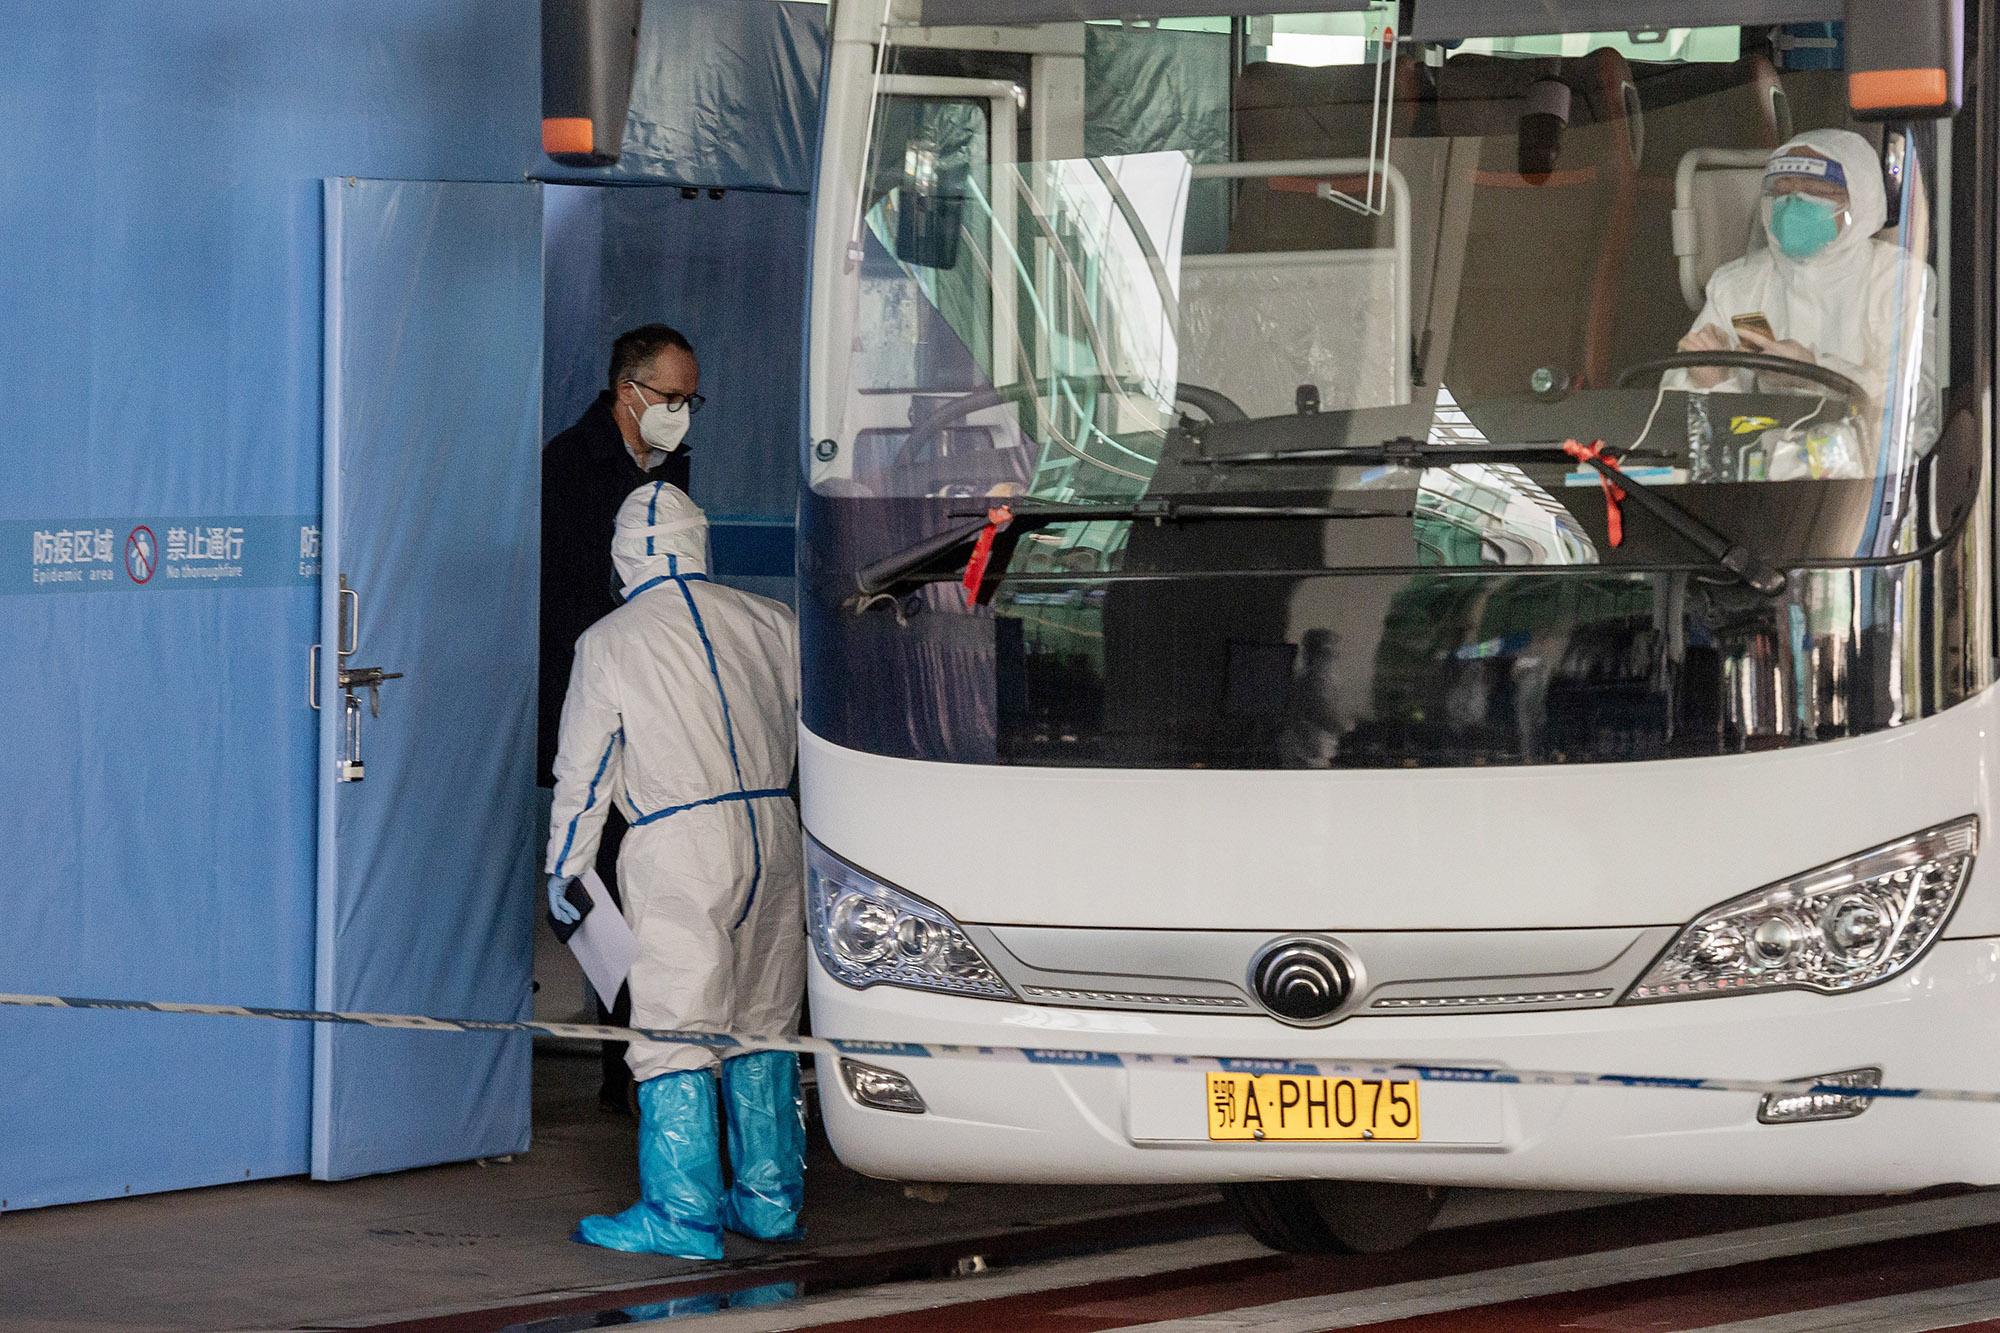 A team from the World Health Organization (WHO) investigating the origins of the Covid-19 pandemic arrived at the airport in Wuhan, China, on January 14.